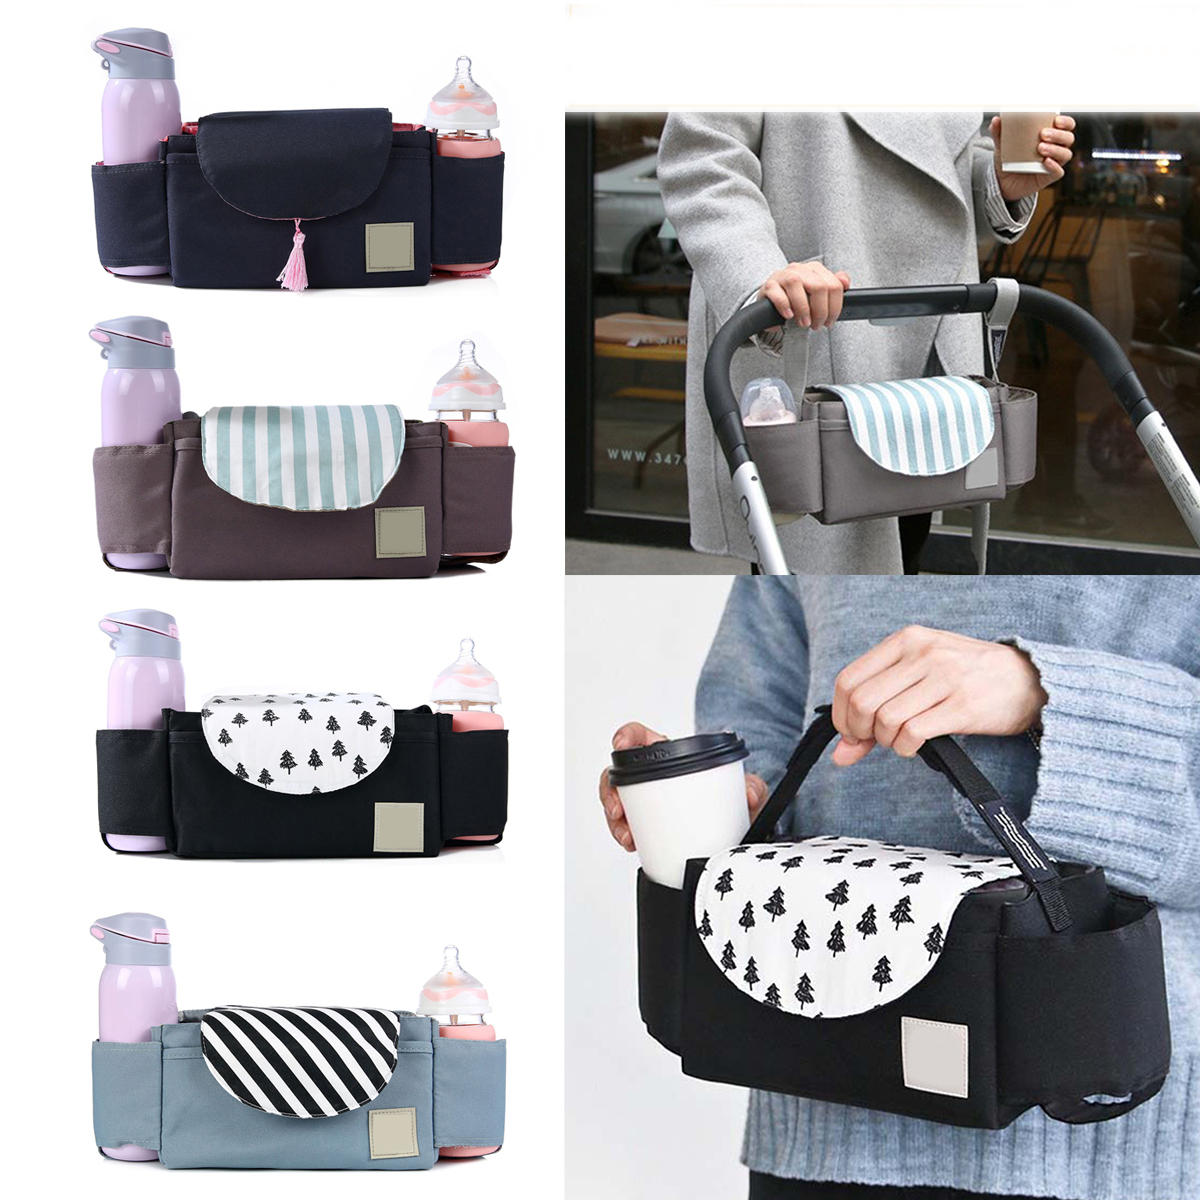 Outdoor Travel Baby Strollers Storage Bag Organizer Pram Buggy Pushchair Cup Diaper Hanging Pouch фото